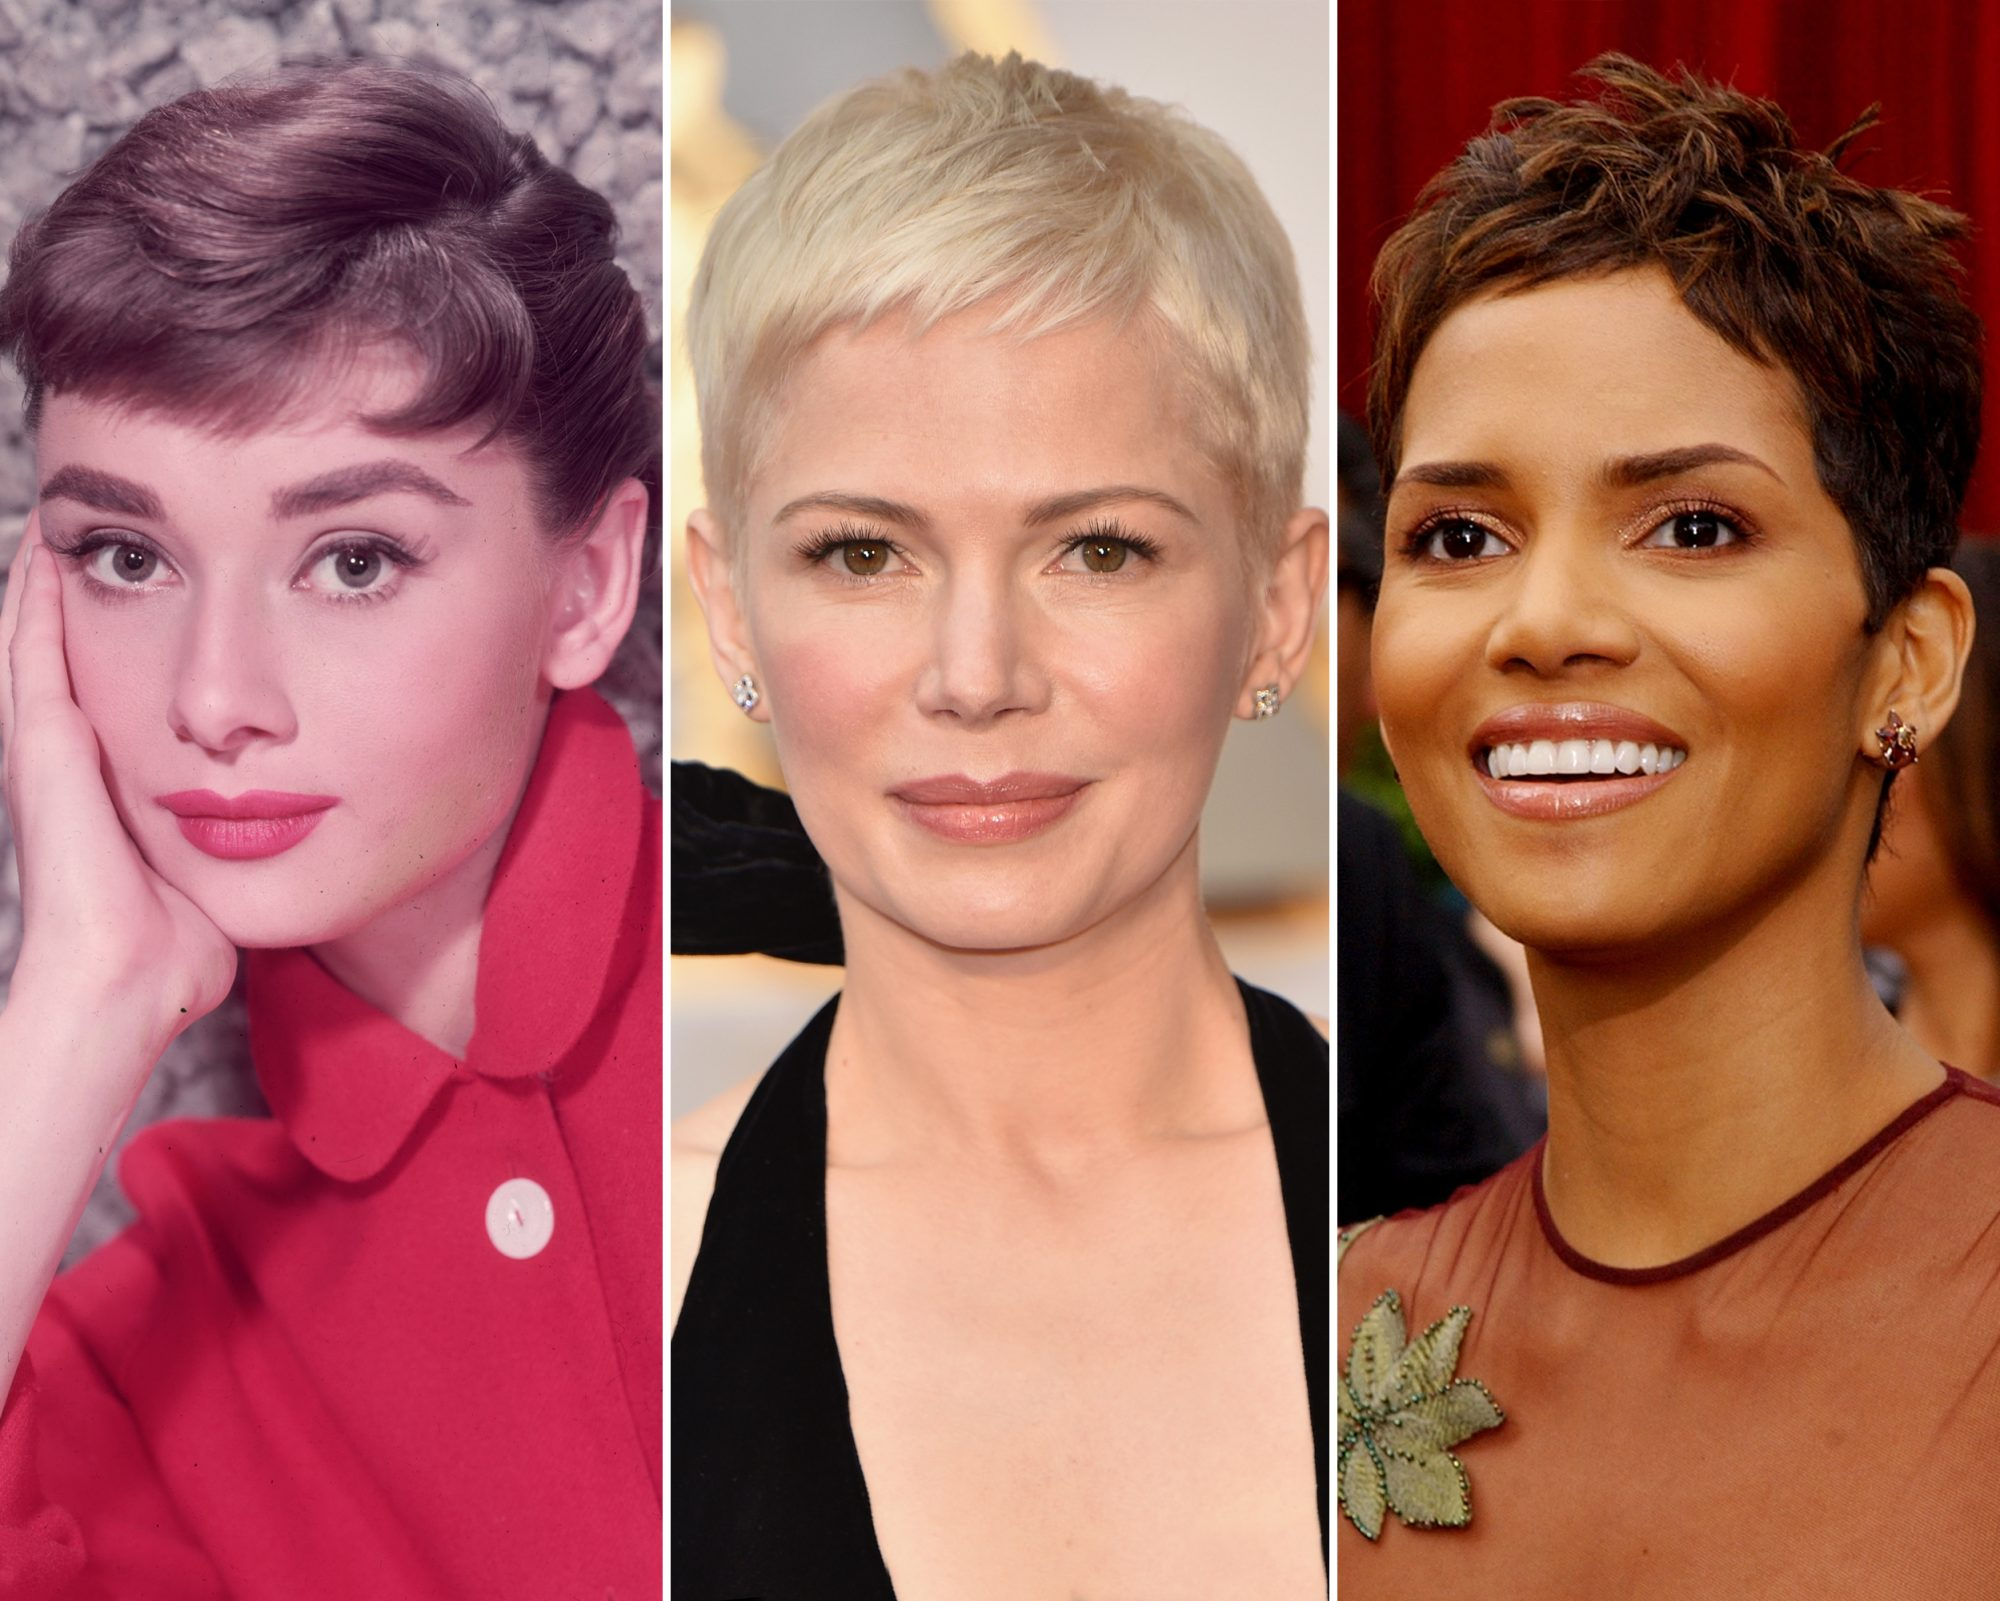 20 of the Most Iconic Celebrity Pixie Cuts